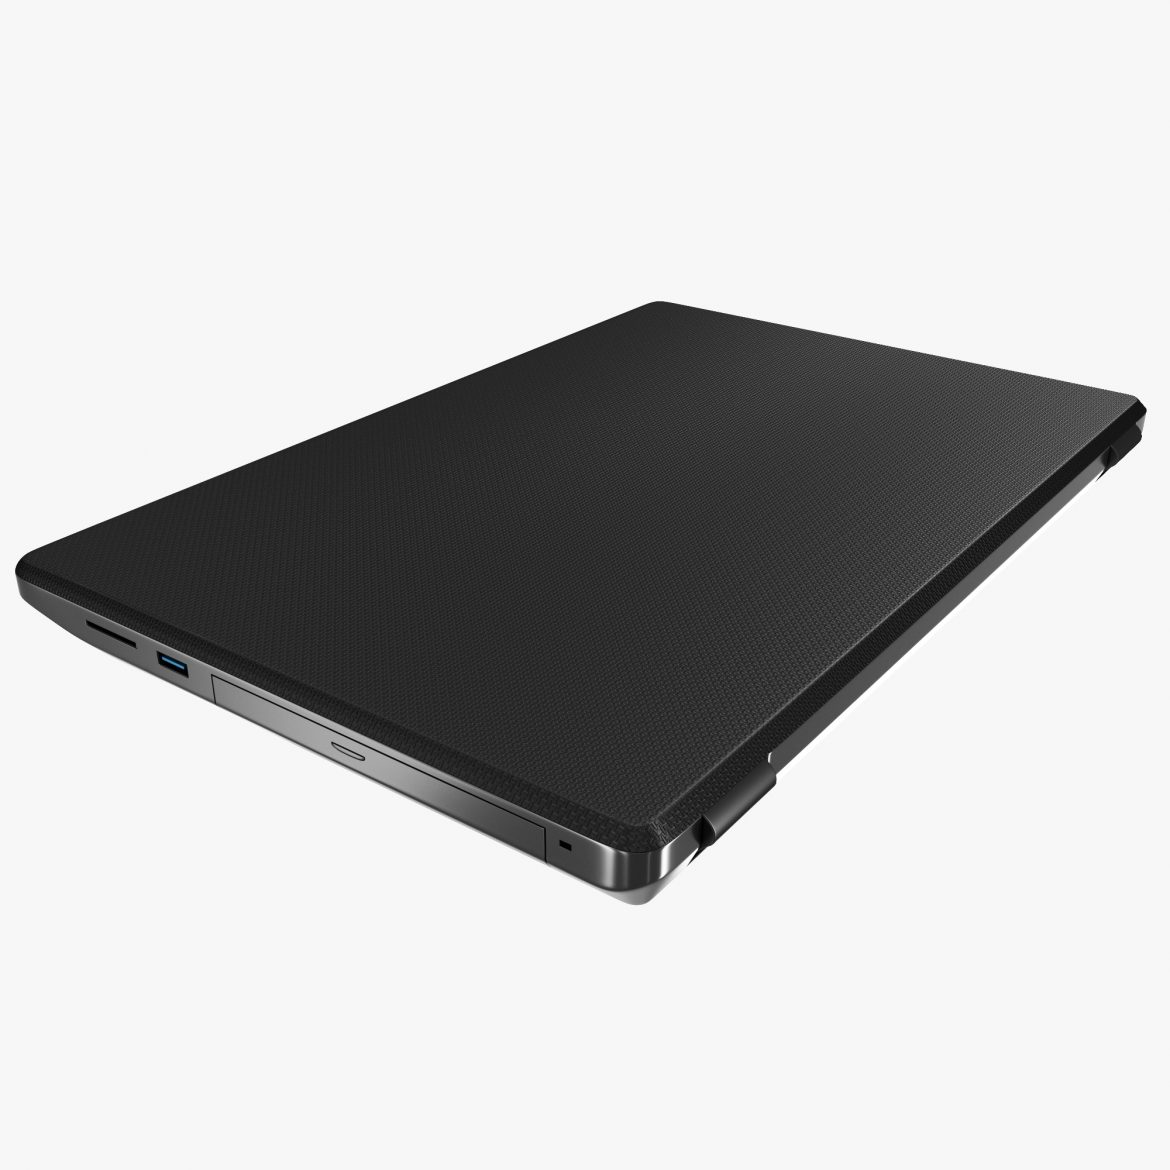 generic notebook laptop 3d model max fbx ma mb obj 298280